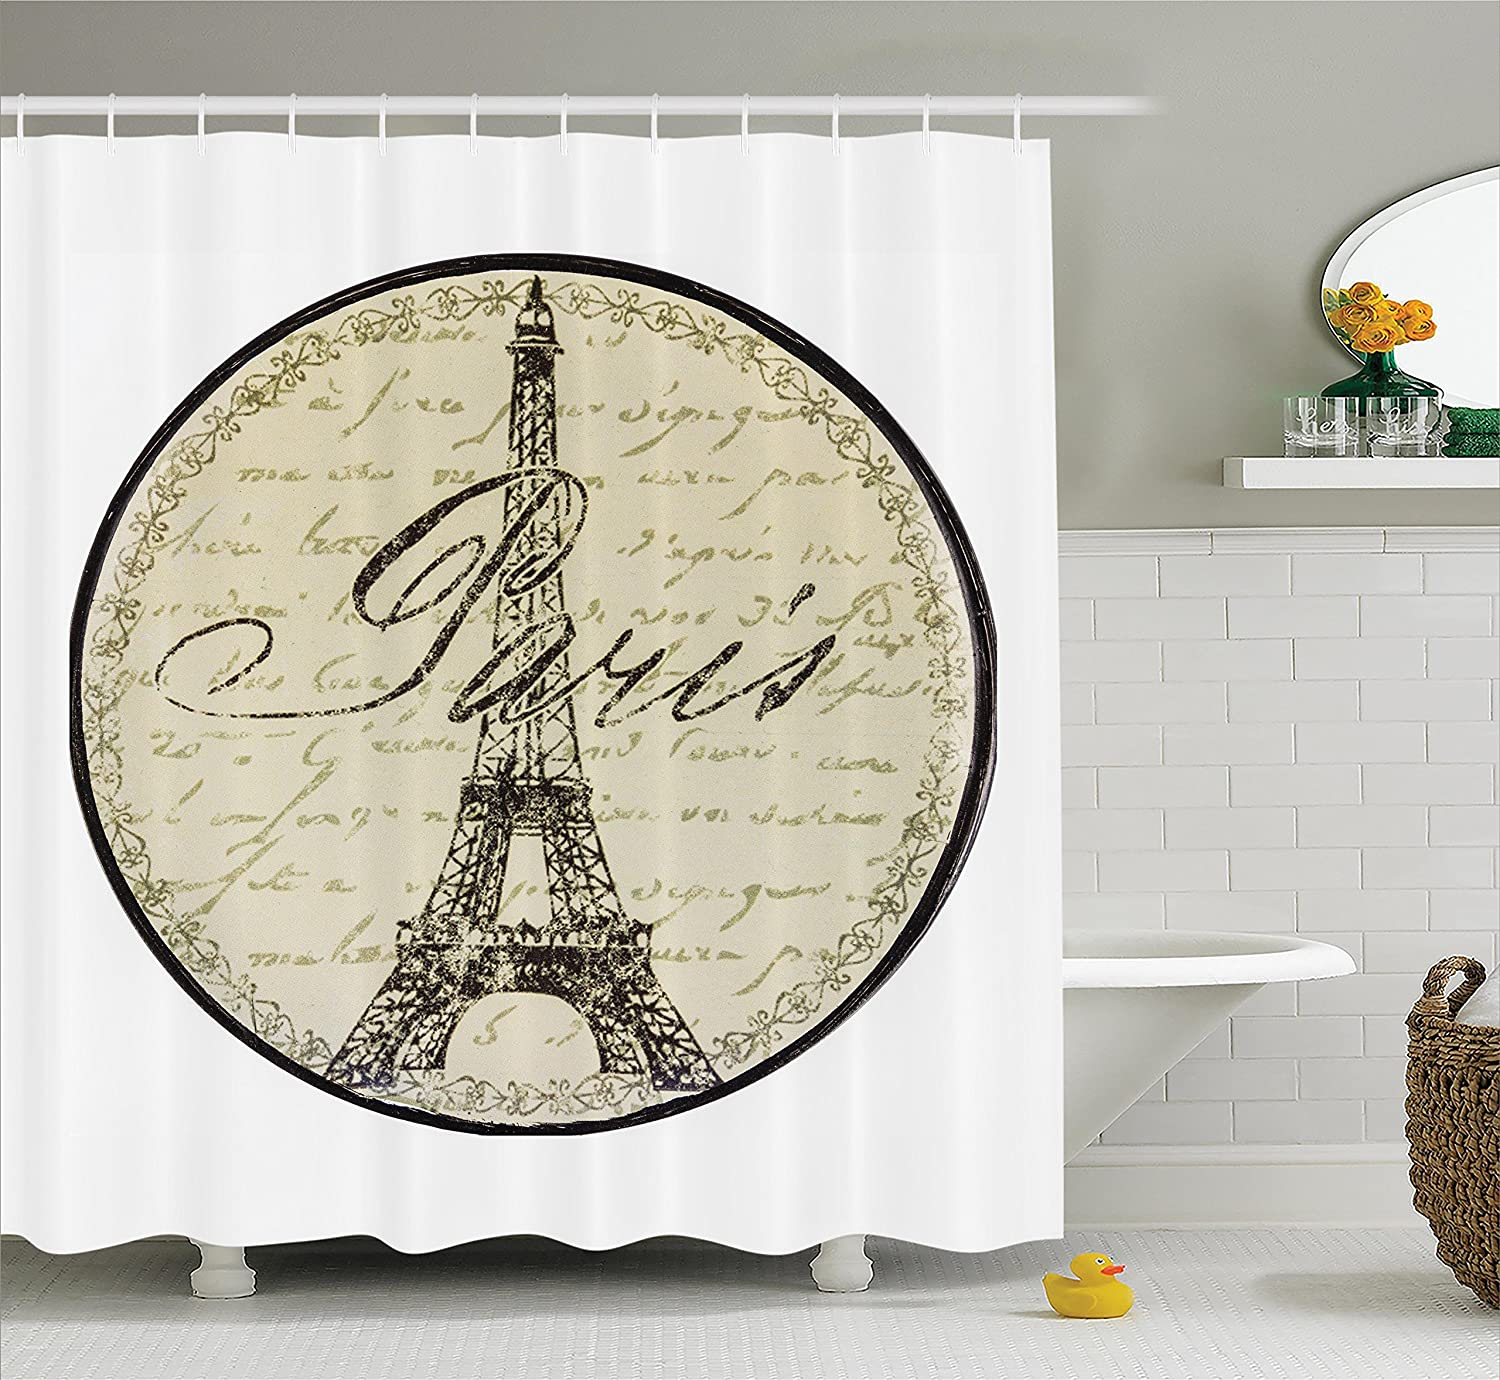 Fabric Bathroom Decor with Hooks Black White sc/_18257/_Bicycle/_08.02/_long 75 Inches Long Ambesonne Bicycle Decor Shower Curtain Set by Ride Your Bike Lettering with Nostalgic Mountain Bike Hand Drawn Stylized Sketchy Work